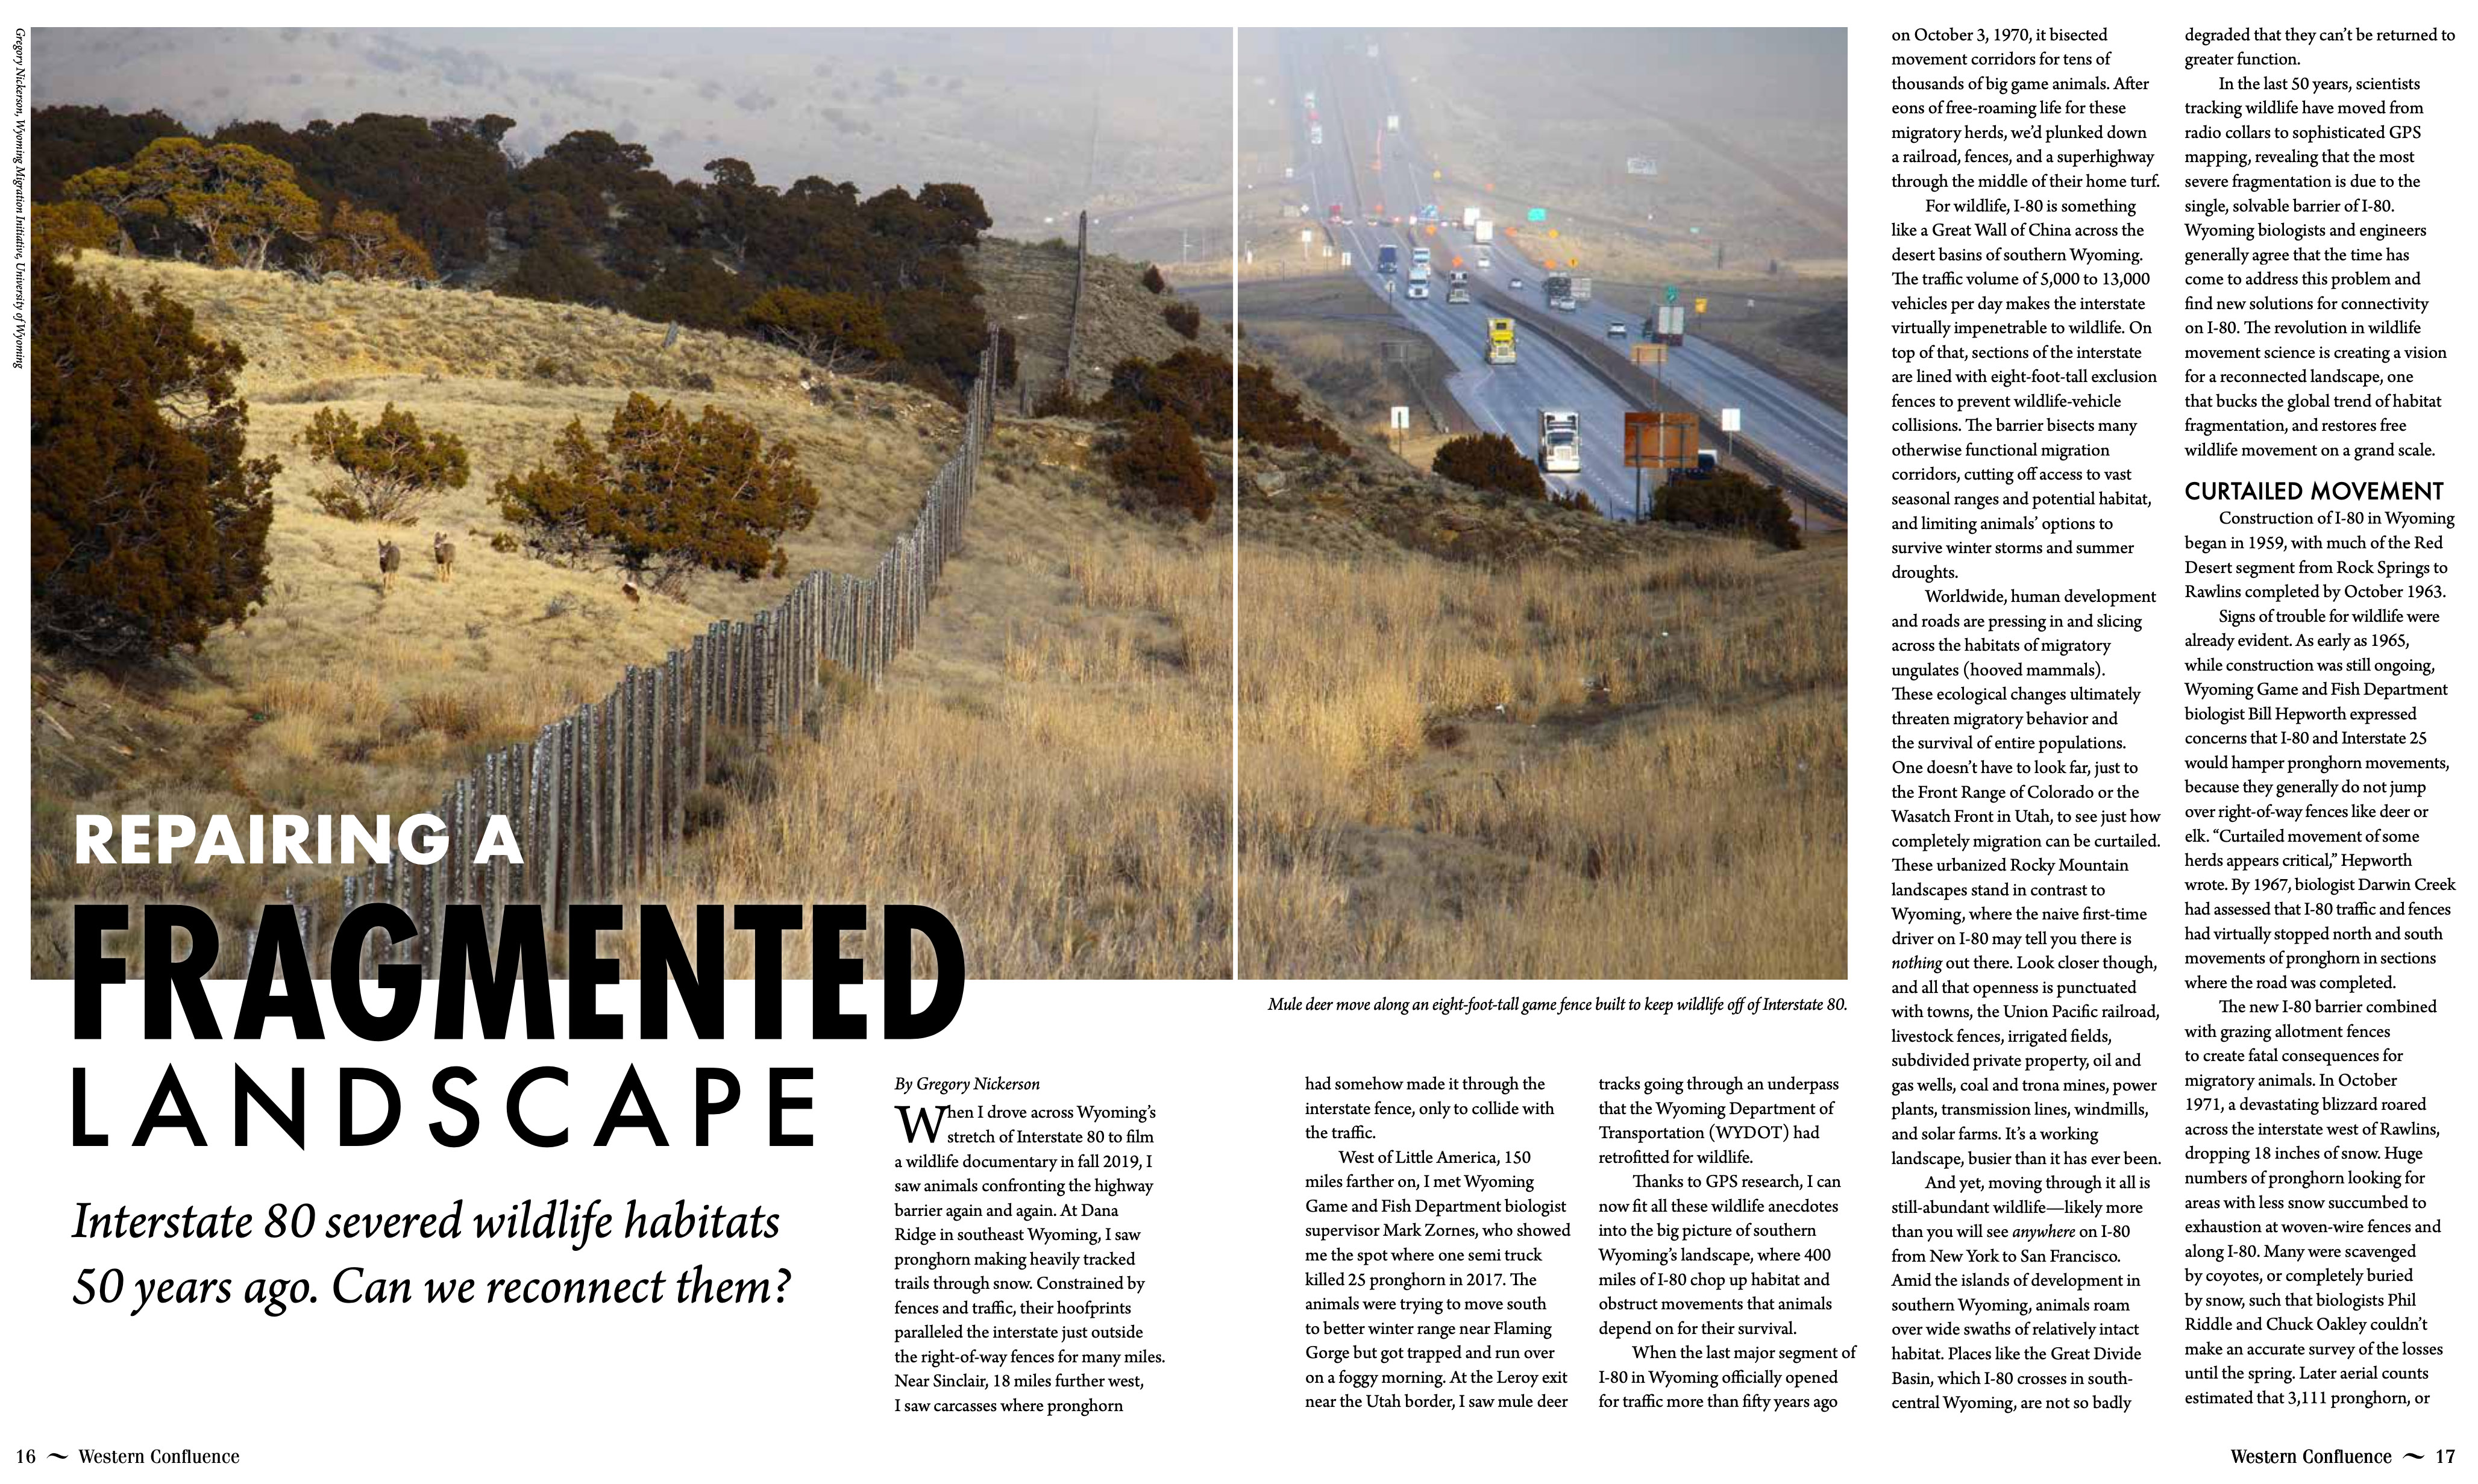 Western Confluence article thumbnail